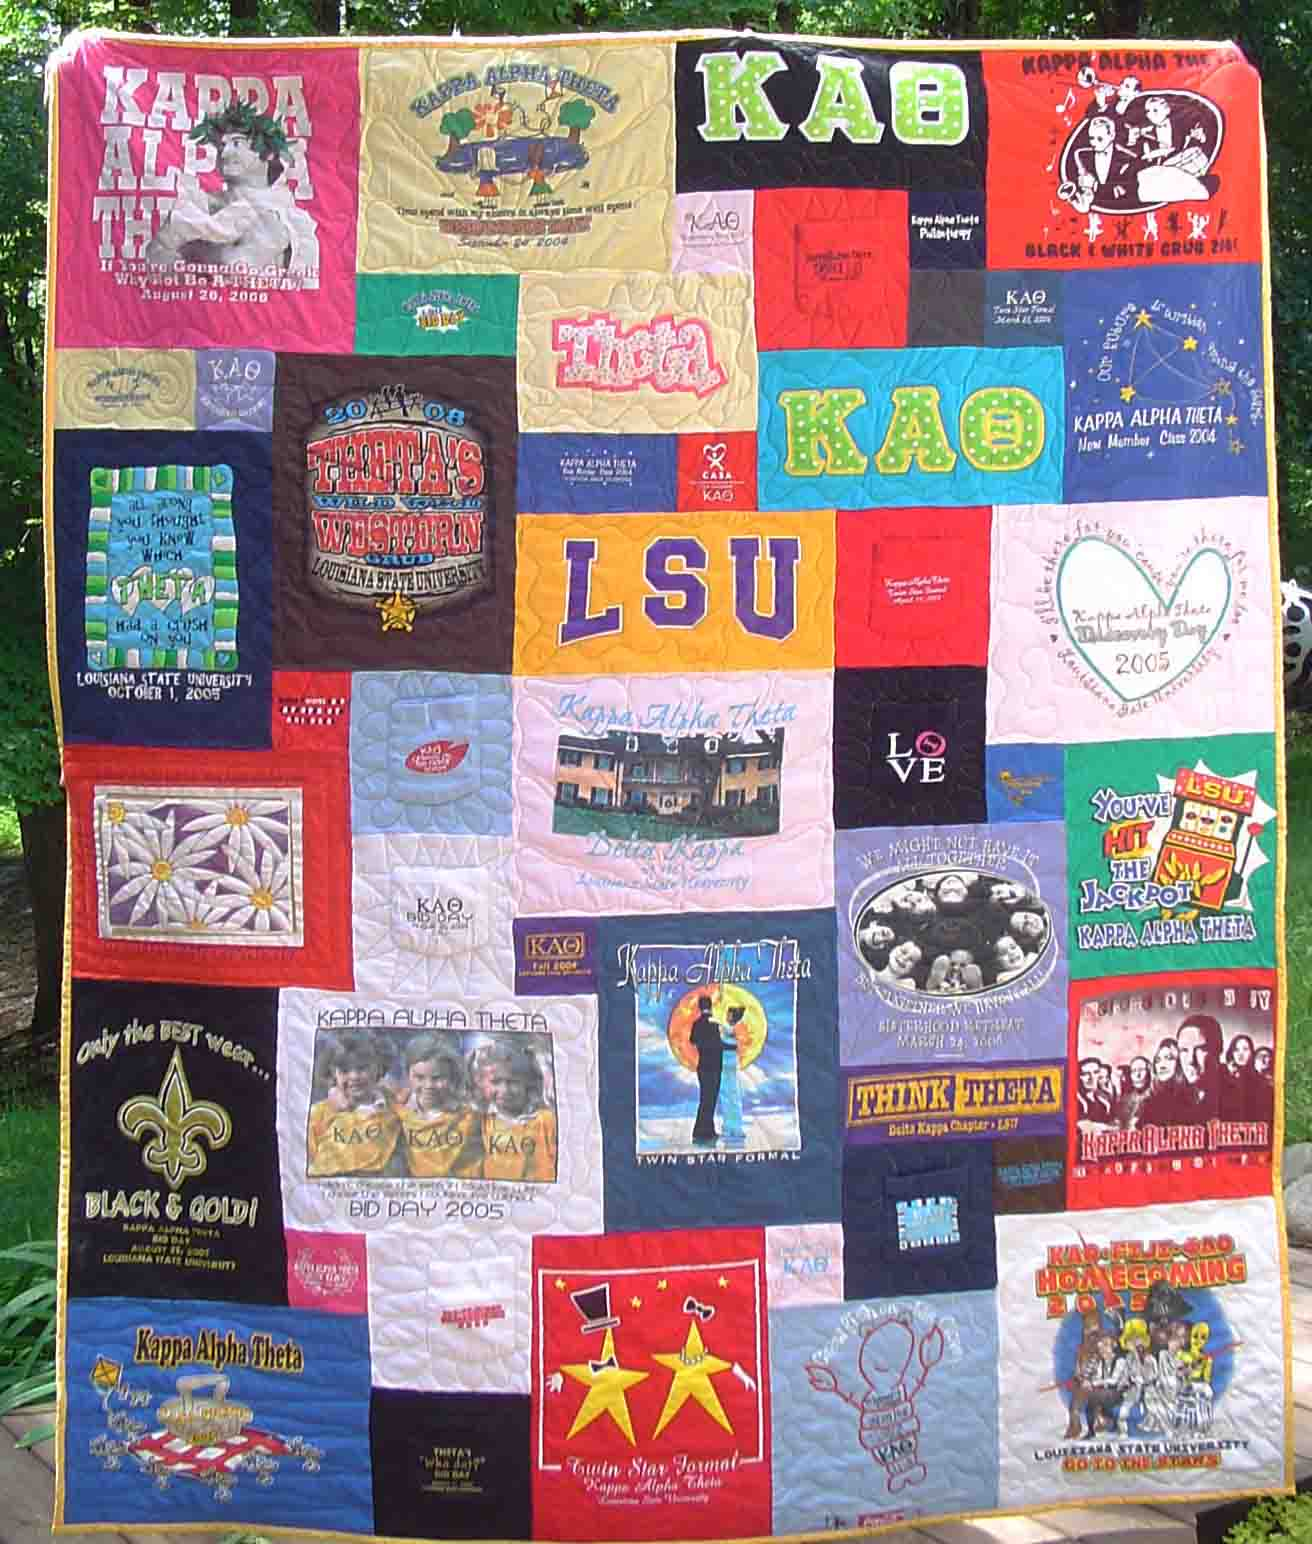 Campus QuiltCompany makes quilts with your favoriteCampus QuiltCompany makes quilts with your favoritet-shirtsthat keep track of your memories for you. 1 What makes aCampus QuiltCompany makes quilts with your favoriteCampus QuiltCompany makes quilts with your favoritet-shirtsthat keep track of your memories for you. 1 What makes aT-Campus QuiltCompany makes quilts with your favoriteCampus QuiltCompany makes quilts with your favoritet-shirtsthat keep track of your memories for you. 1 What makes aCampus QuiltCompany makes quilts with your favoriteCampus QuiltCompany makes quilts with your favoritet-shirtsthat keep track of your memories for you. 1 What makes aT-ShirtQuilt fromCampus QuiltCompany makes quilts with your favoriteCampus QuiltCompany makes quilts with your favoritet-shirtsthat keep track of your memories for you. 1 What makes aCampus QuiltCompany makes quilts with your favoriteCampus QuiltCompany makes quilts with your favoritet-shirtsthat keep track of your memories for you. 1 What makes aT-Campus QuiltCompany makes quilts with your favoriteCampus QuiltCompany makes quilts with your favoritet-shirtsthat keep track of your memories for you. 1 What makes aCampus QuiltCompany makes quilts with your favoriteCampus QuiltCompany makes quilts with your favoritet-shirtsthat keep track of your memories for you. 1 What makes aT-ShirtQuilt fromCampus QuiltCompany